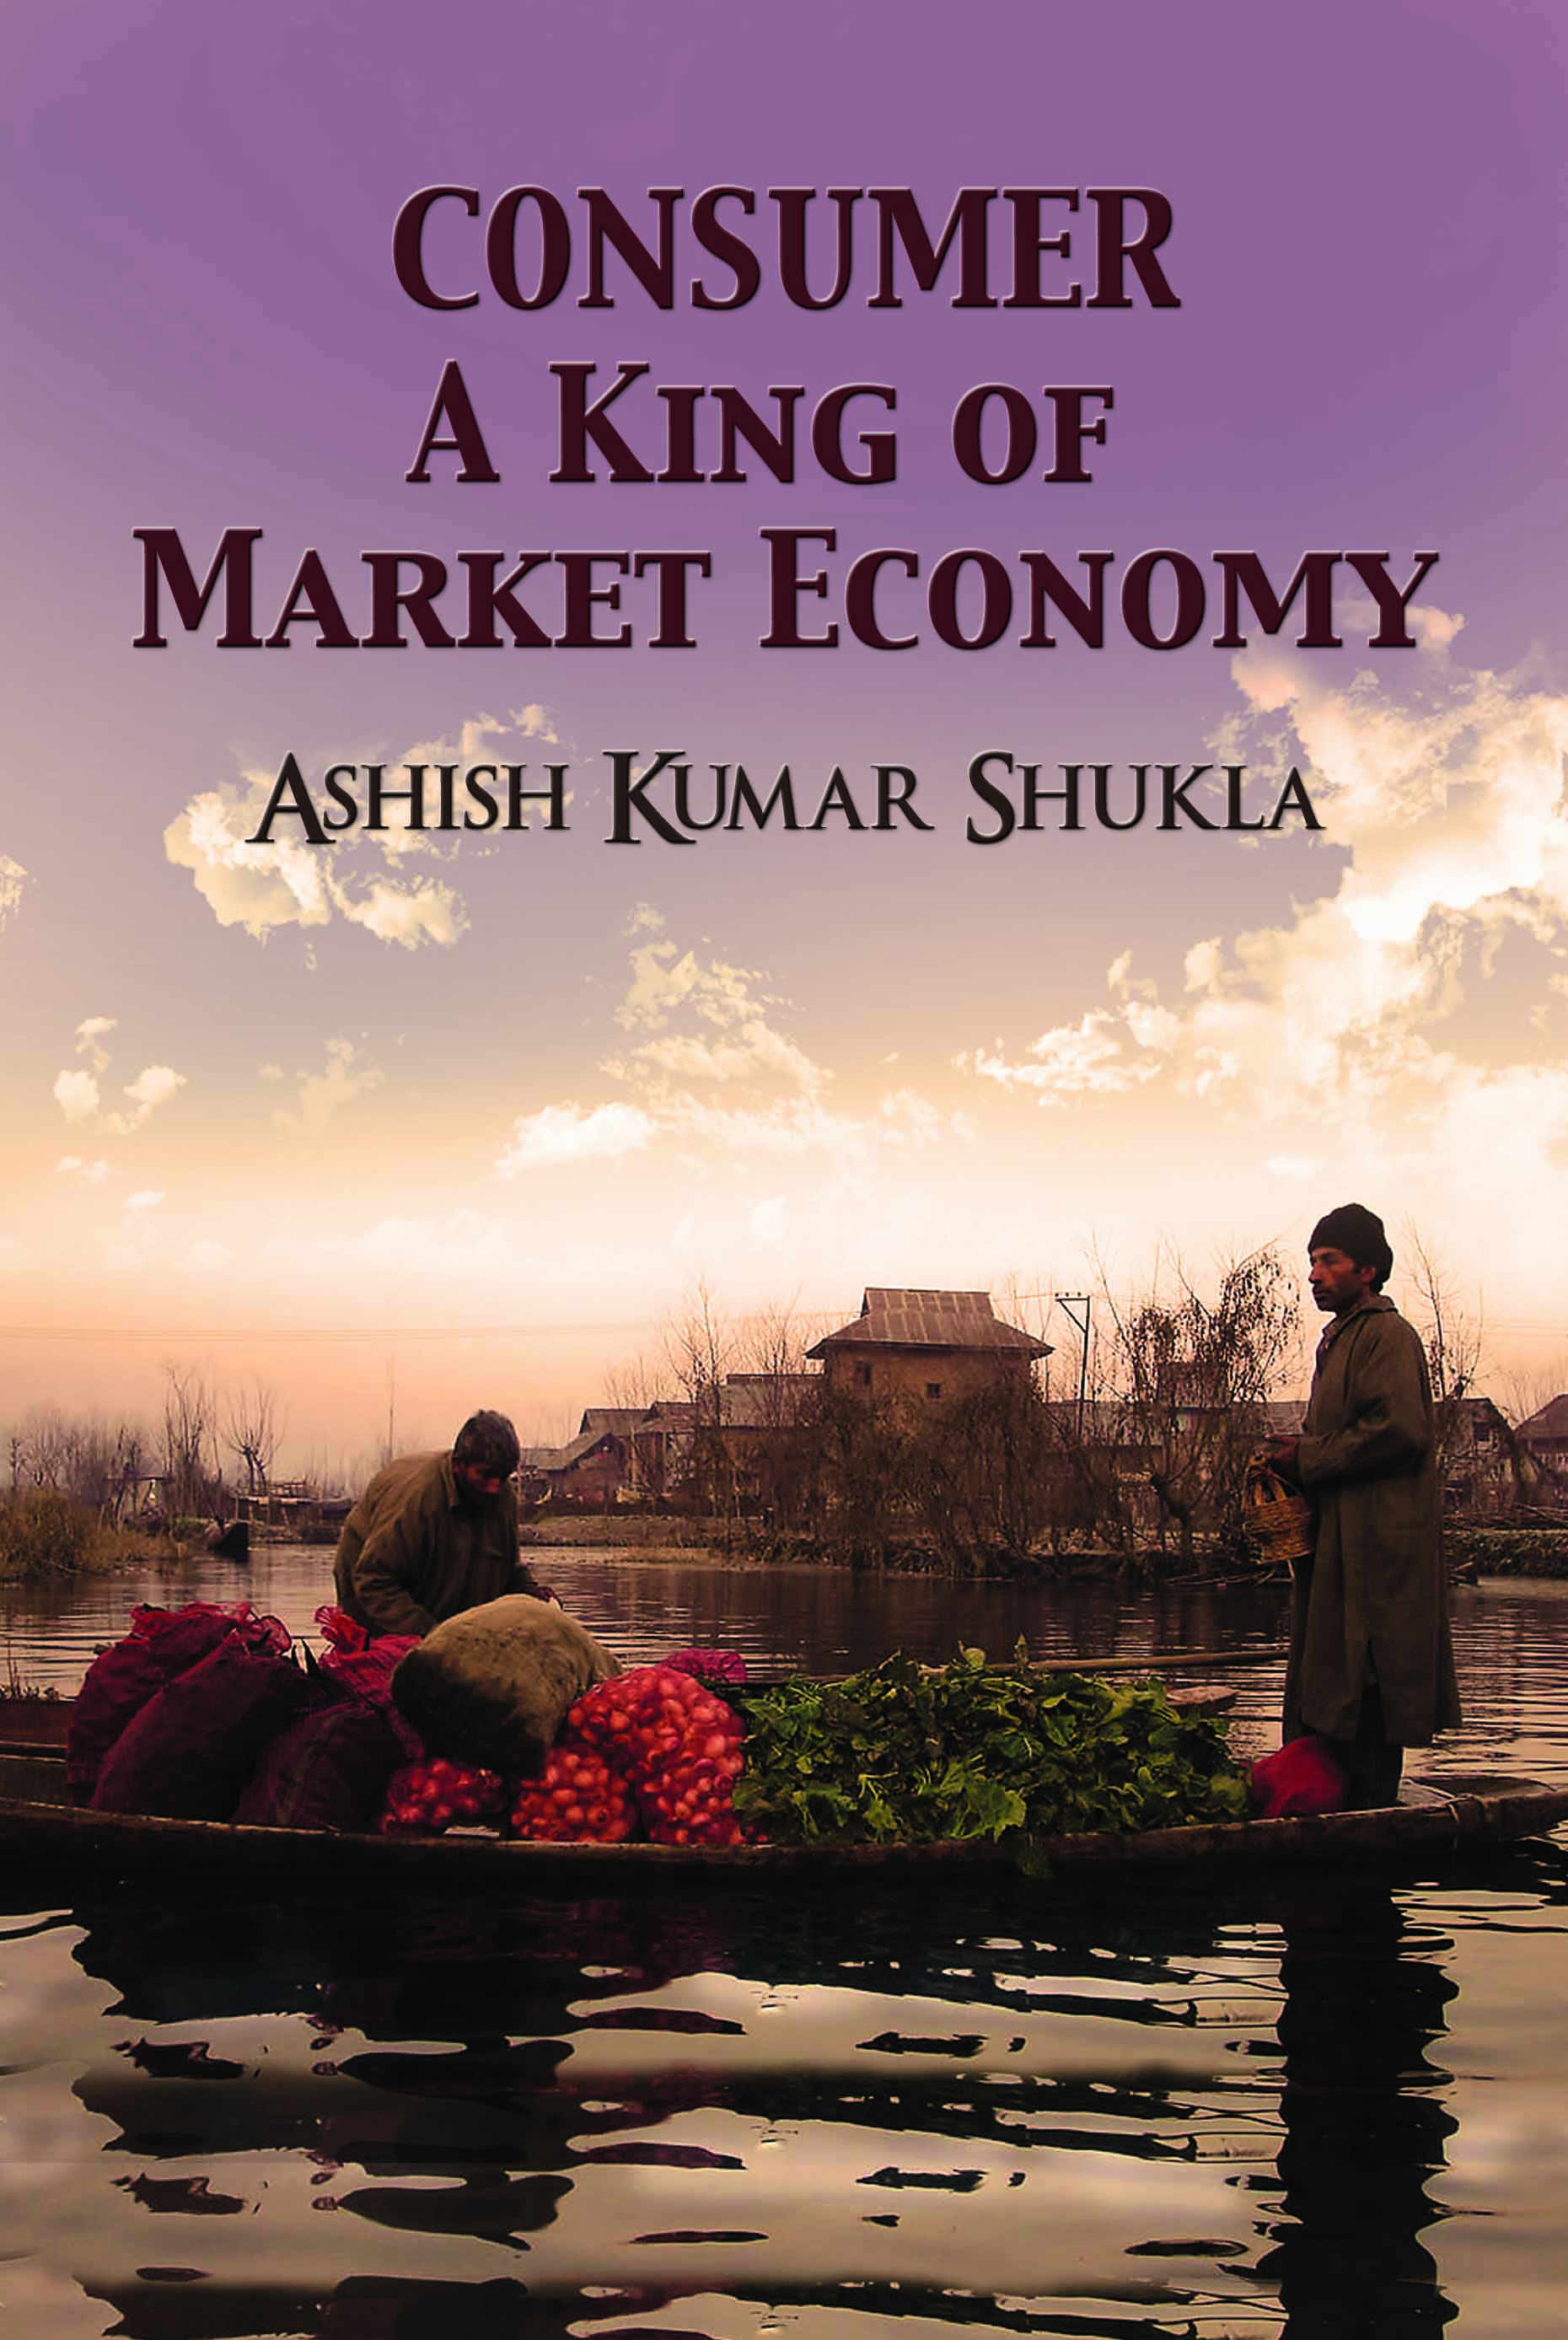 CONSUMER : A KING OF MARKET ECONOMY